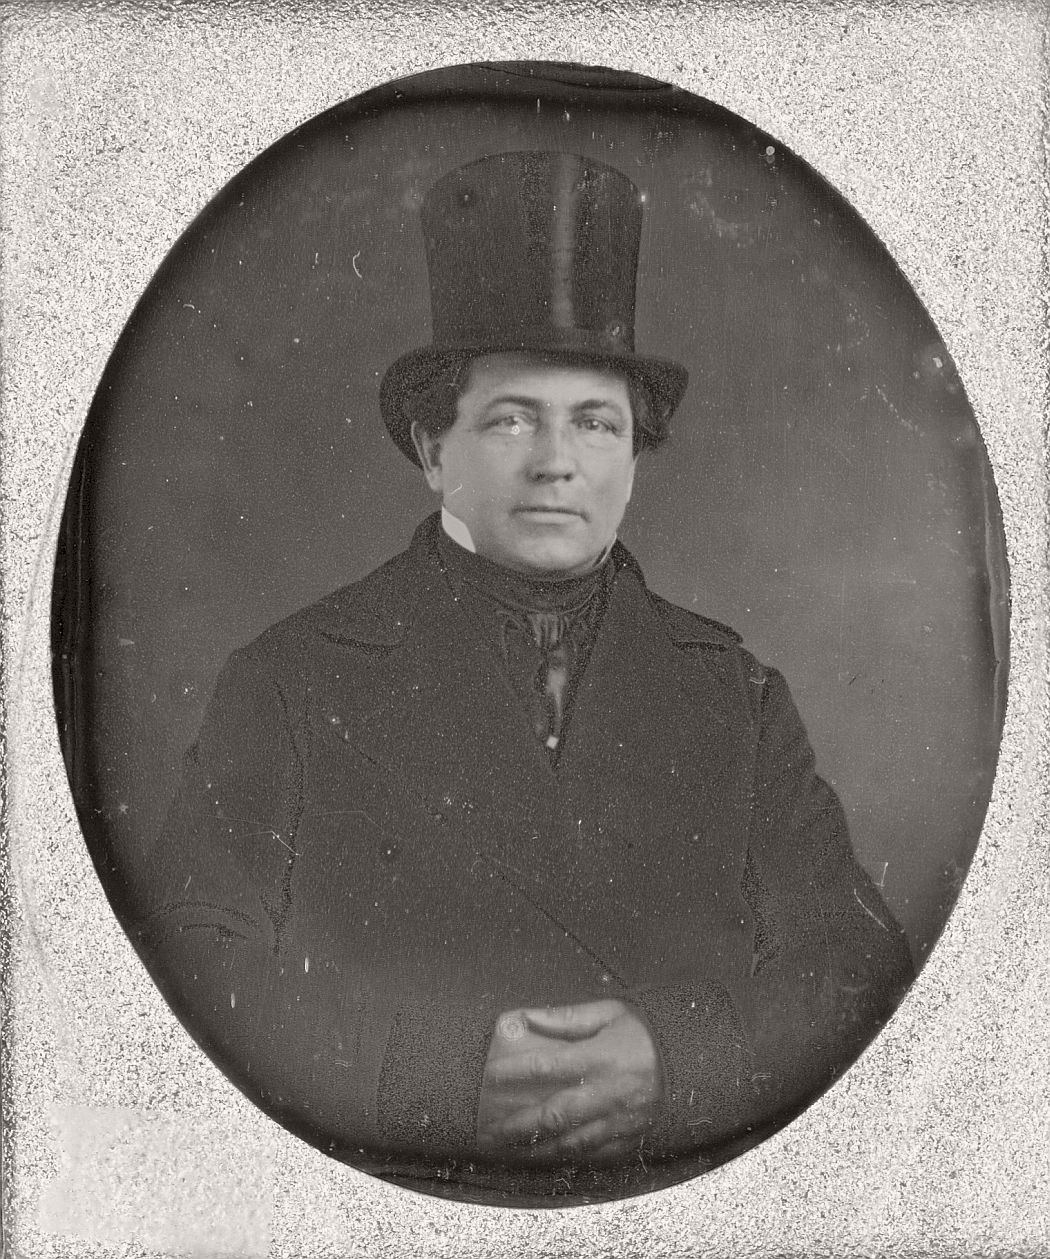 victorian-era-daguerreotype-of-men-in-hat-1850s-xix-century-13